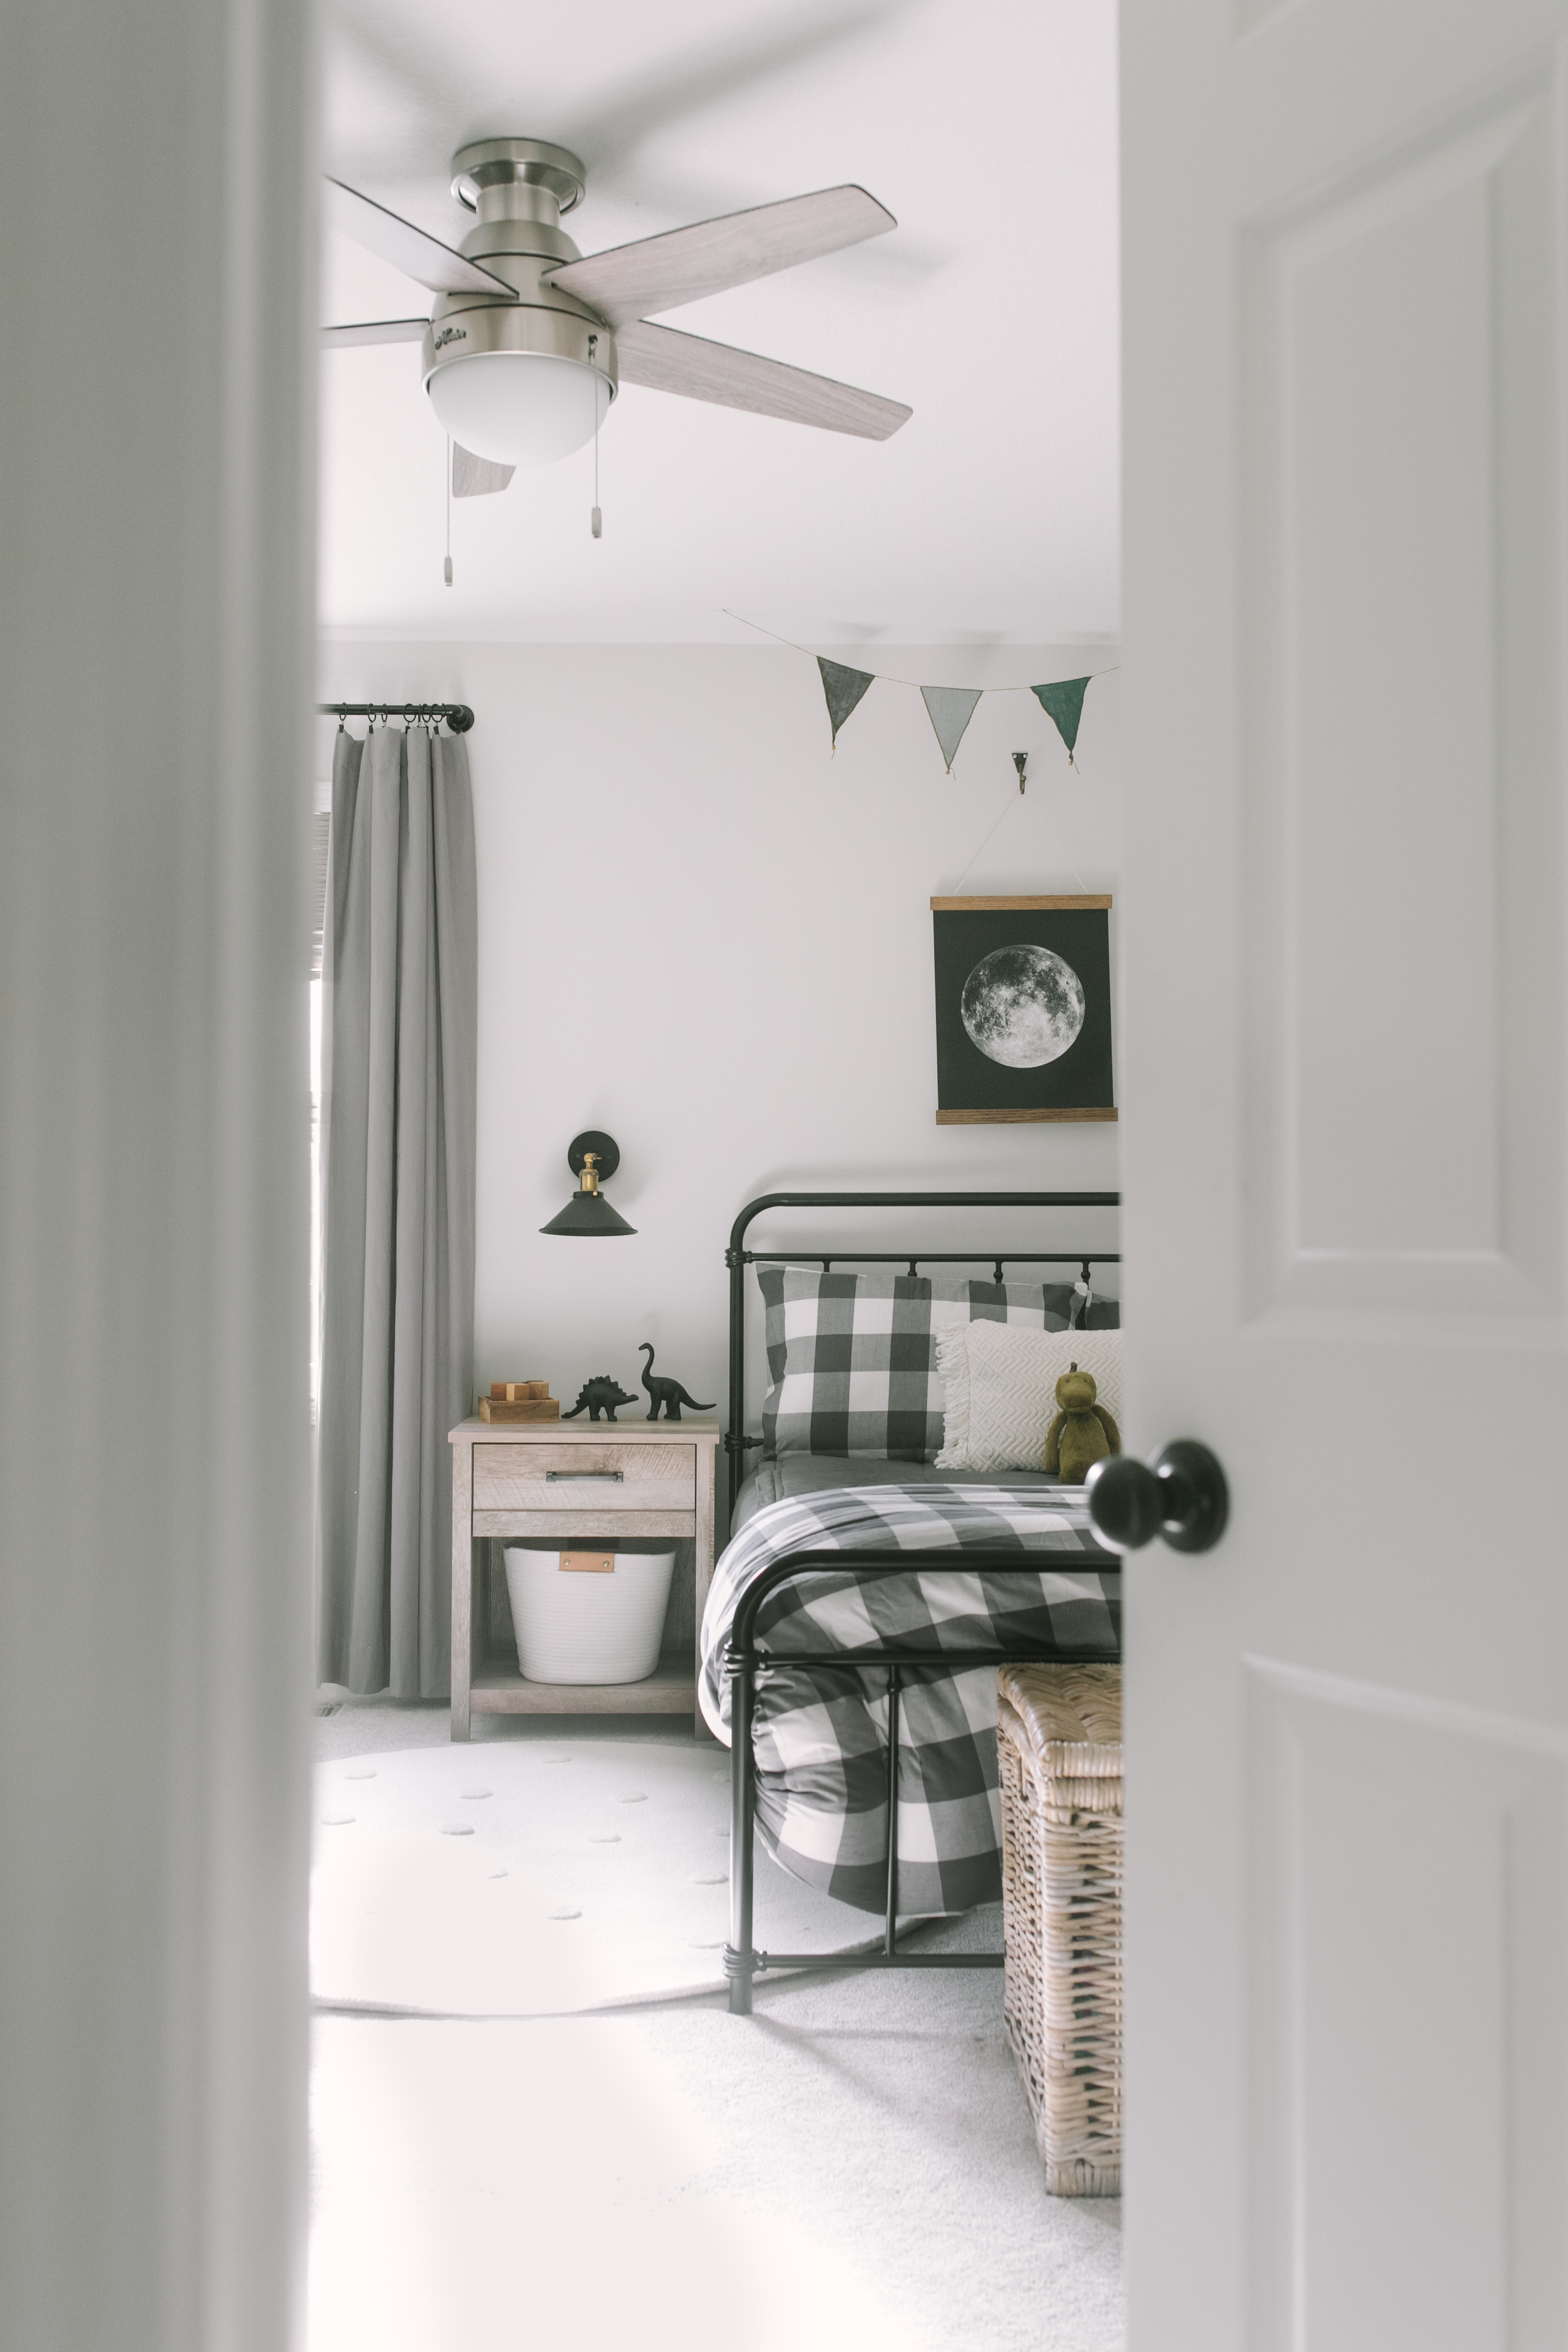 Picture of: 5 Tips For Transitioning Toddlers To Big Kid Beds Katie Lamb